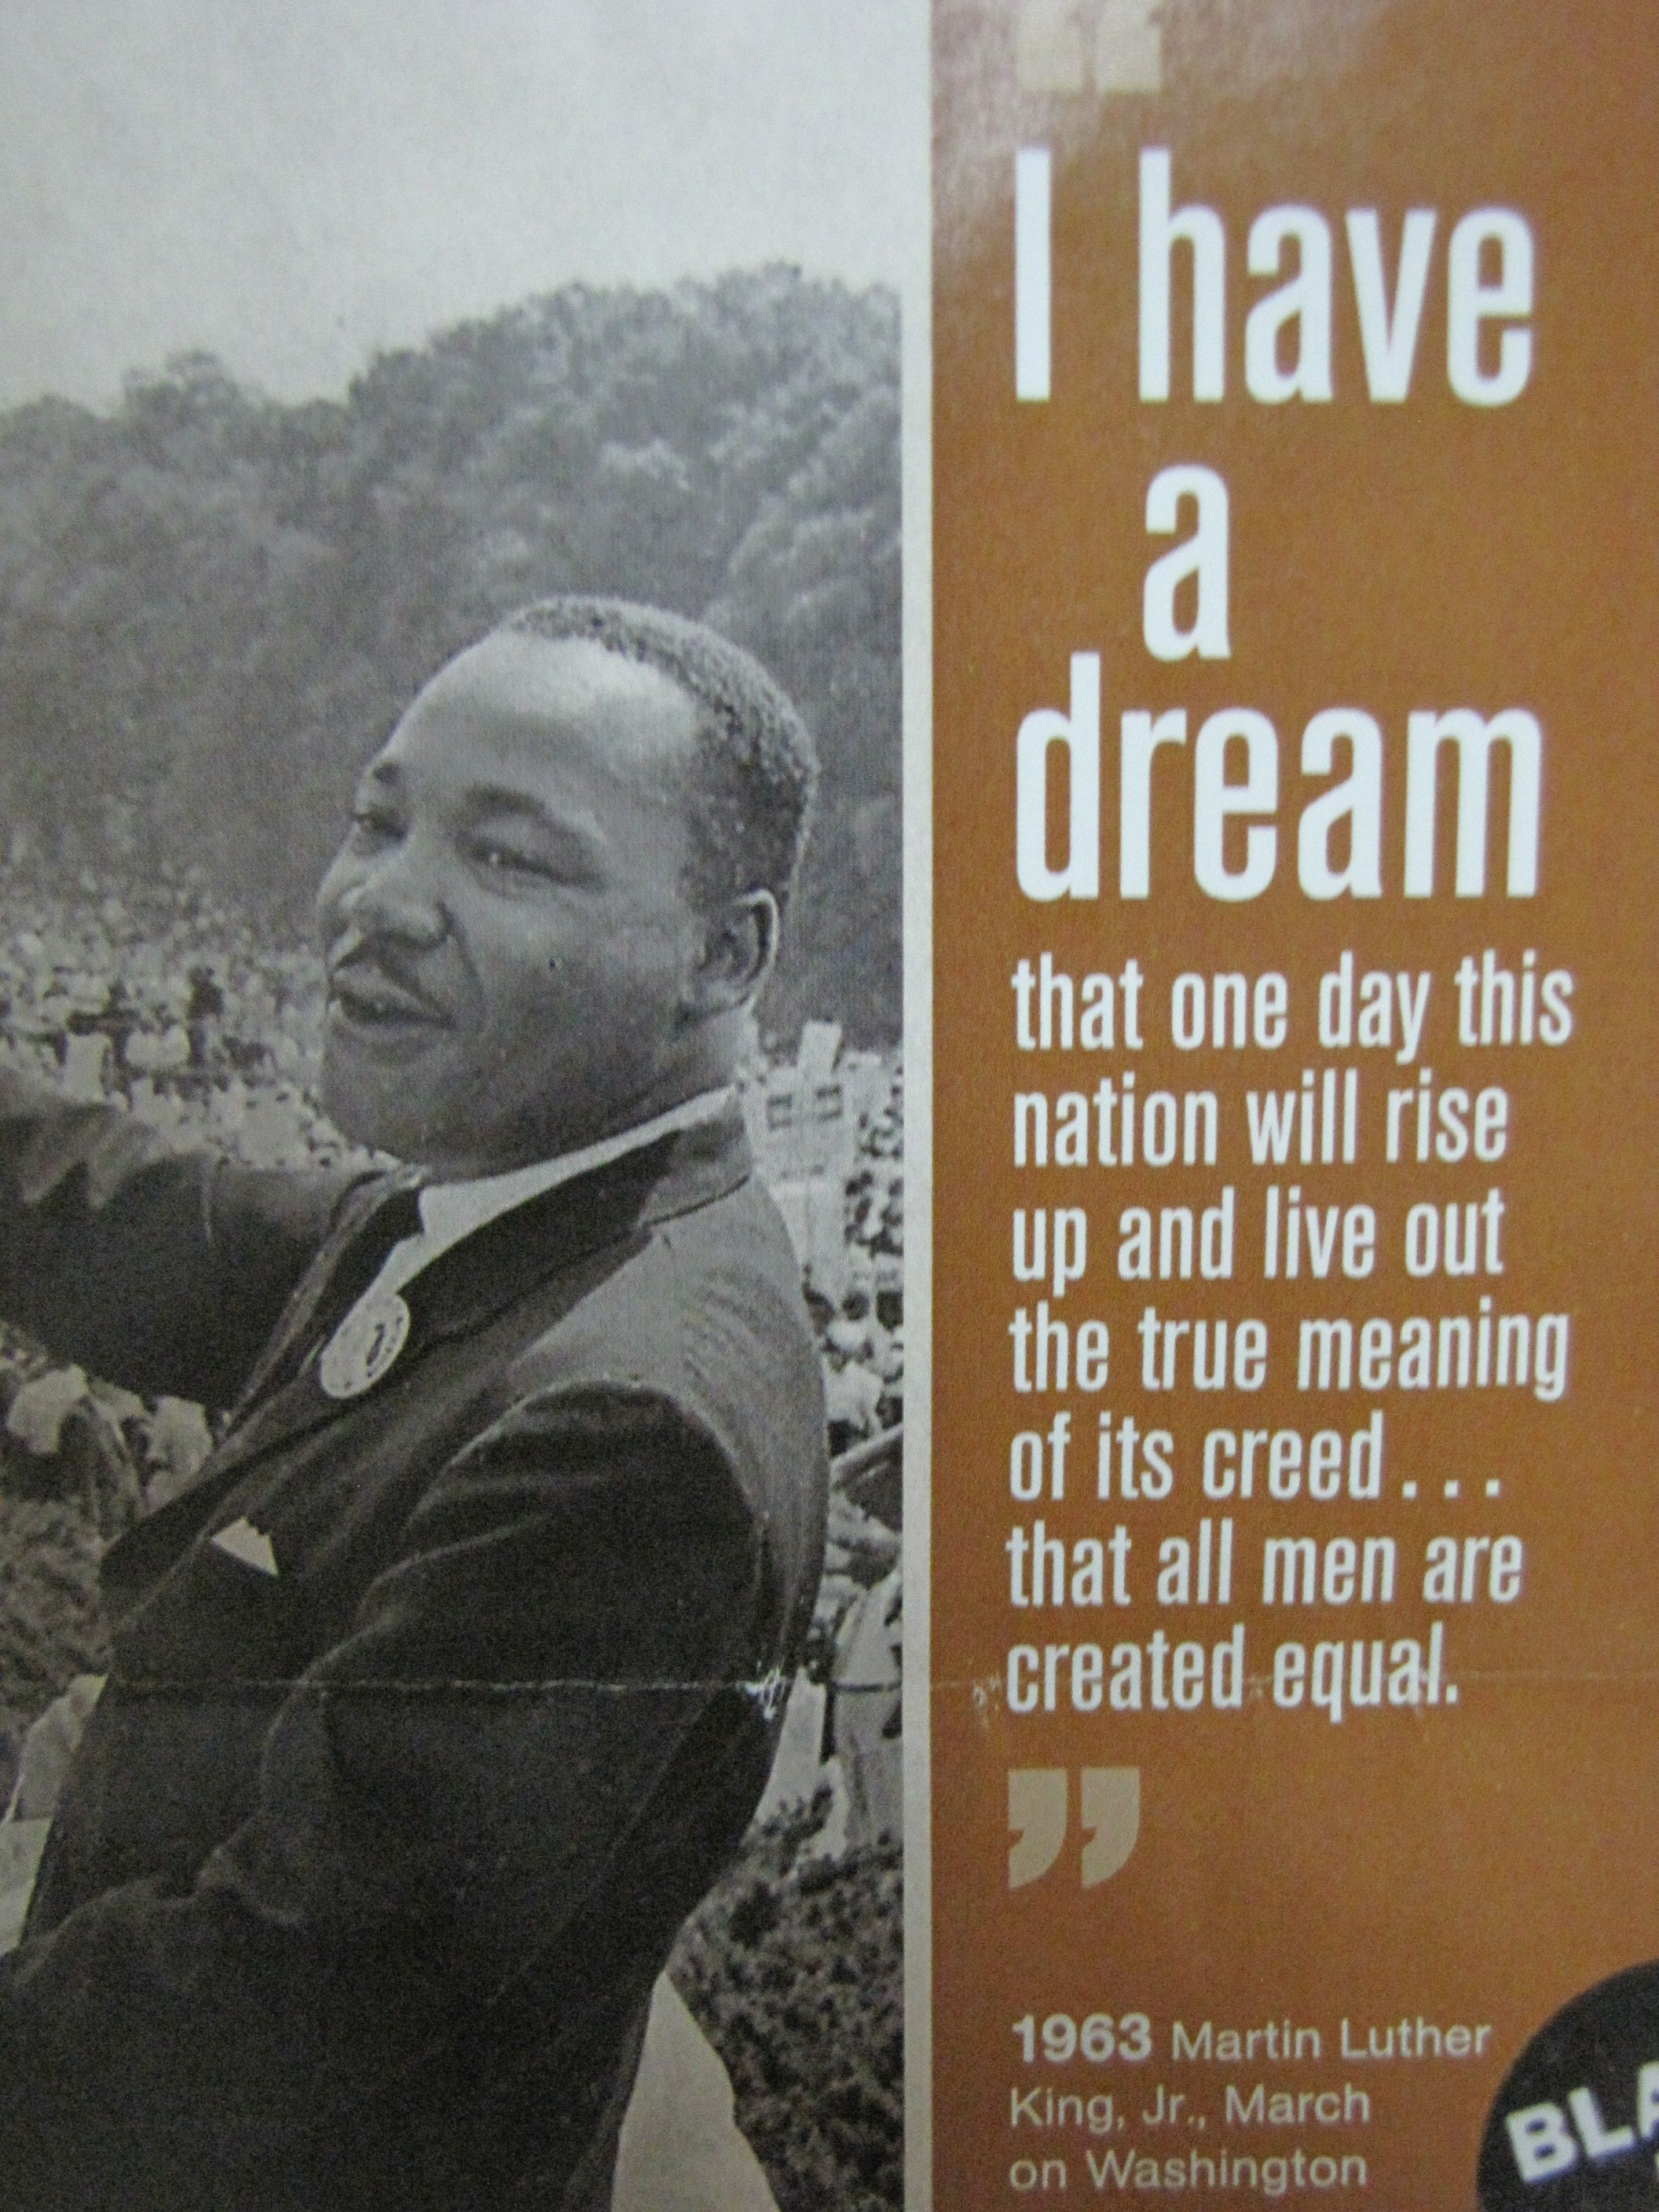 martin luther king jr i have a dream 50th anniversary not martin luther king jr i have a dream 50th anniversary